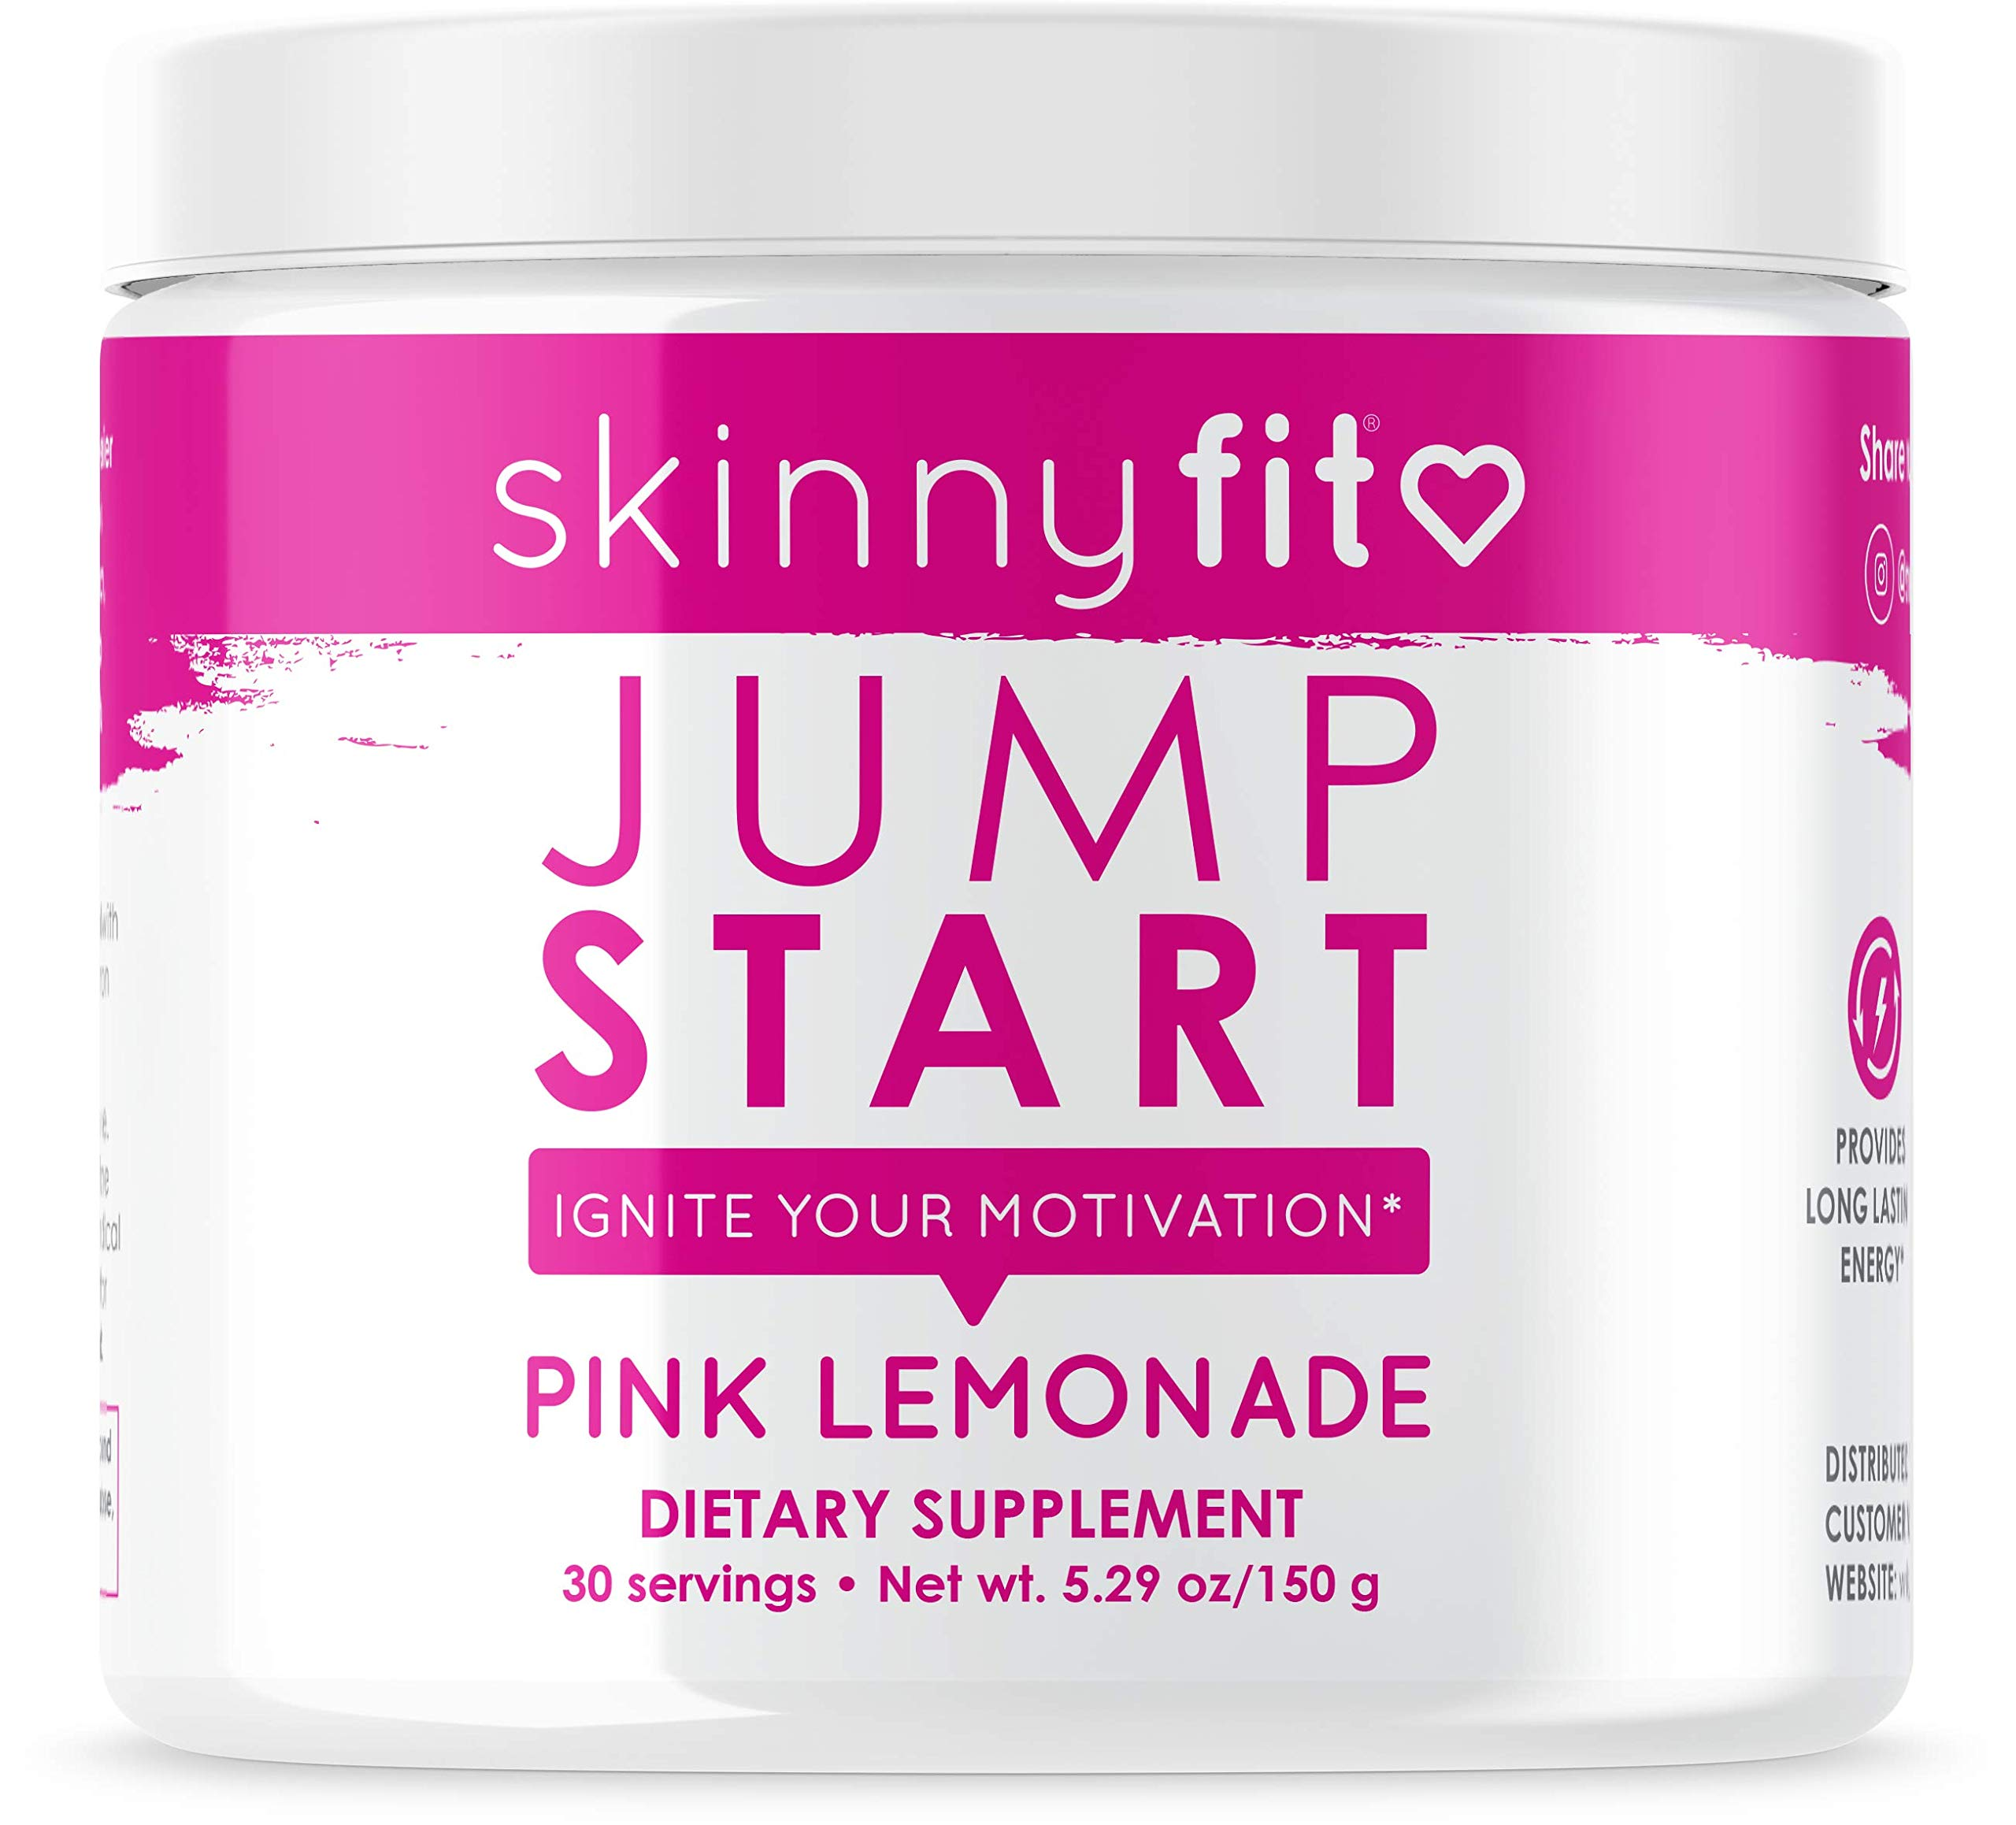 Skinny Fit Jump Start Pre Workout Supplement For Women 30 Servings - Creatine Free Powdered Mix Drink to Boost Energy, Focus, and Endurance with Caffeine and Fat Burning L-Carnitine; Pink Lemonade